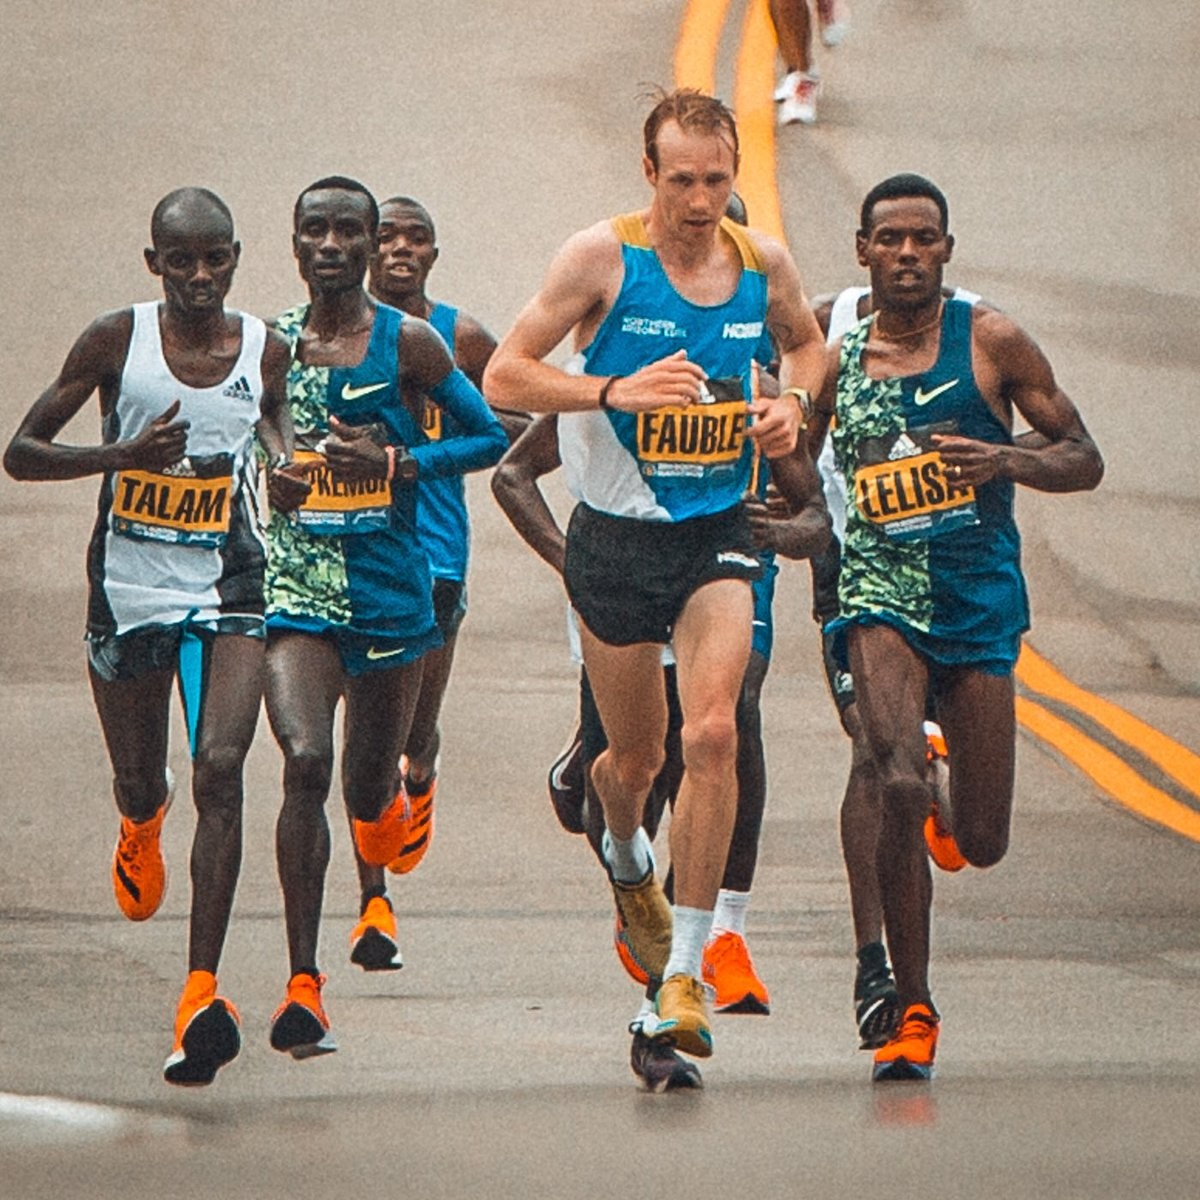 The US Men's Marathon scene over the last few years was all about one runner Galen Rupp until now, enter Scott Fauble and Jared Ward